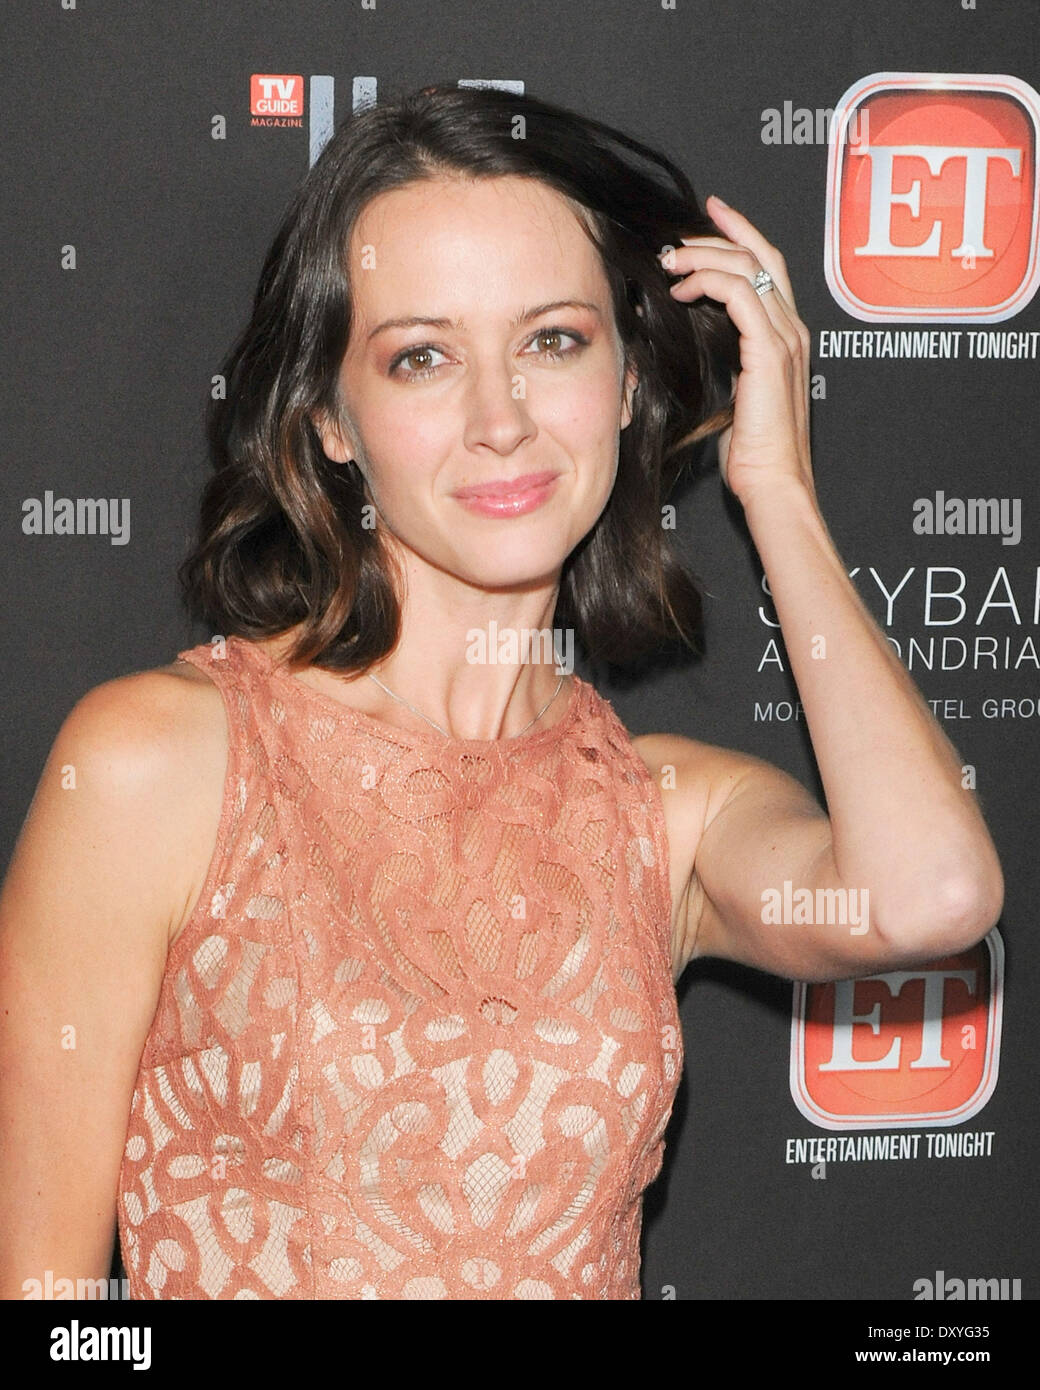 Amy Acker Hot Pics tv guide hot list party held at the mondrian hotel in west